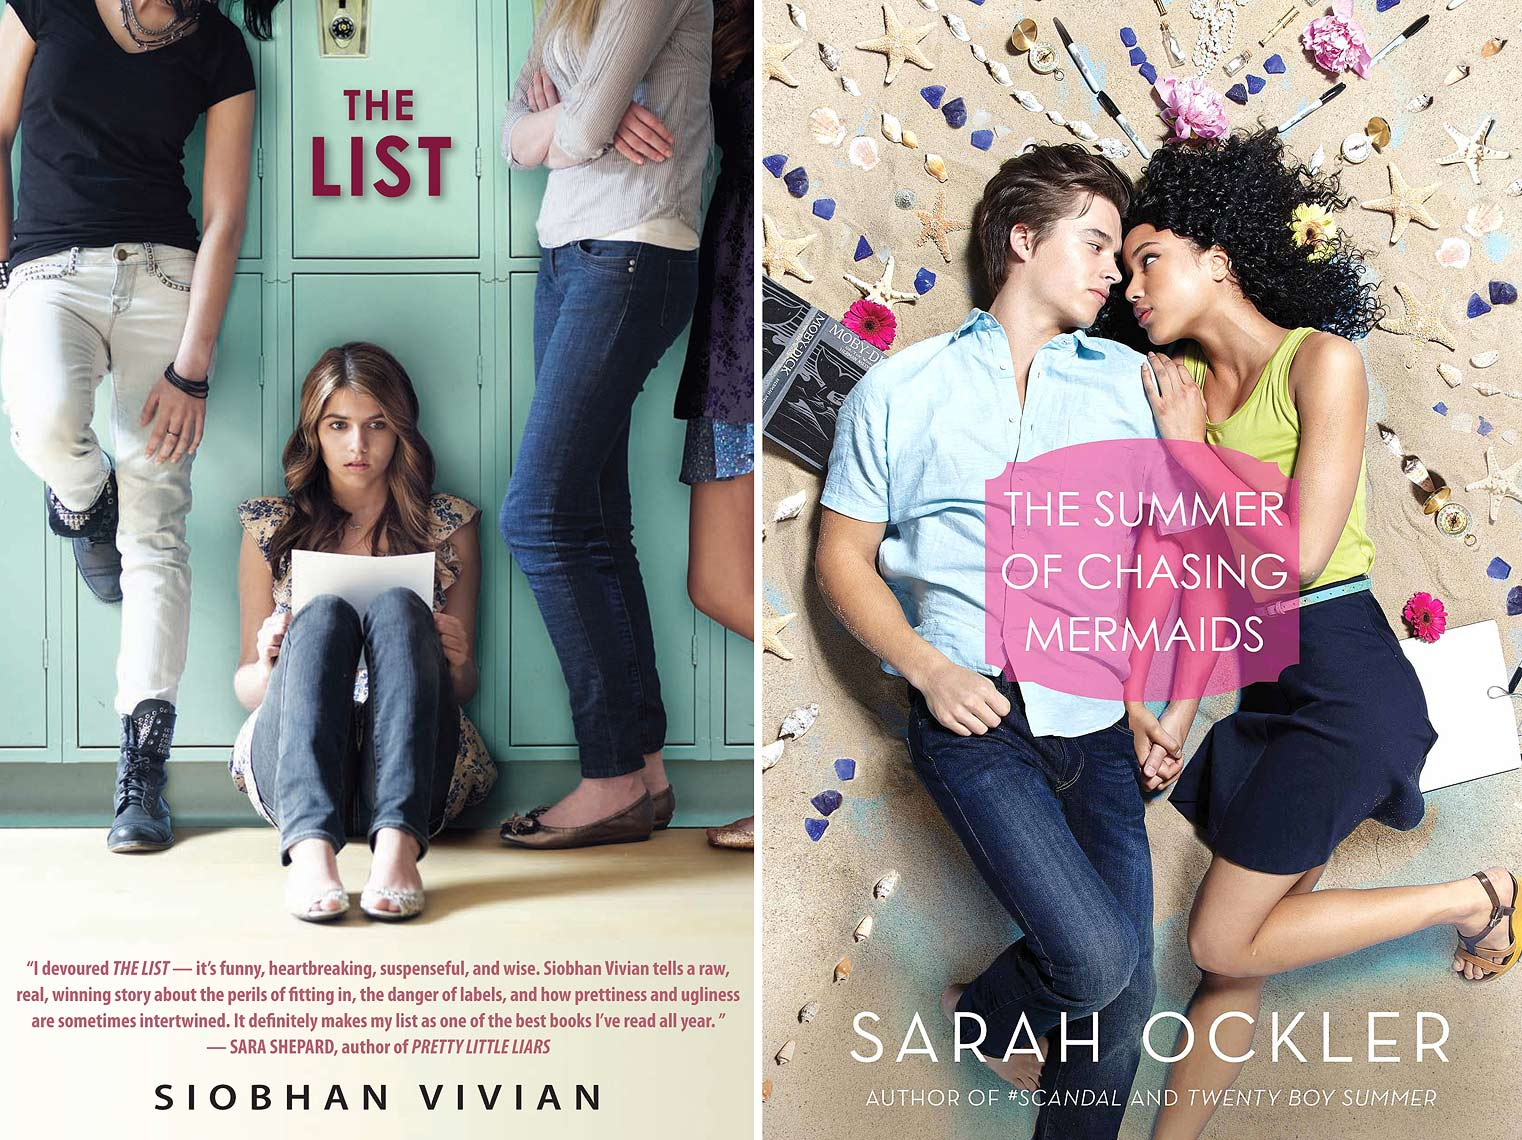 The List - Siobhan Vivian - Sarah Ockler | Michael Frost Photography